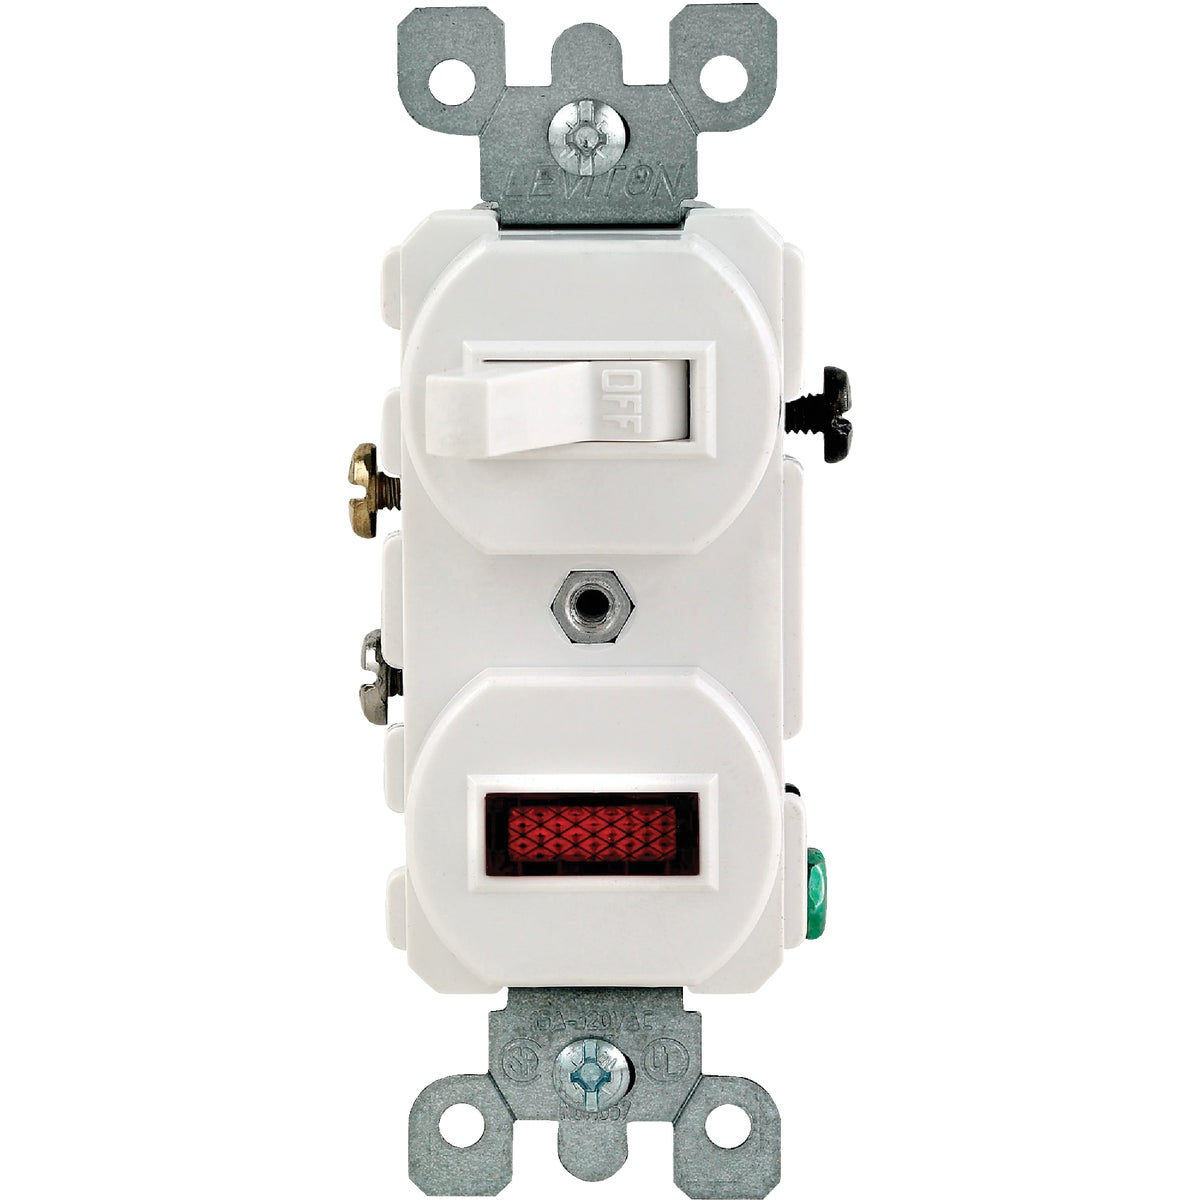 WHITE SWITCH/PILOT LIGHT - S04-05226-WS by Leviton Mfg Co